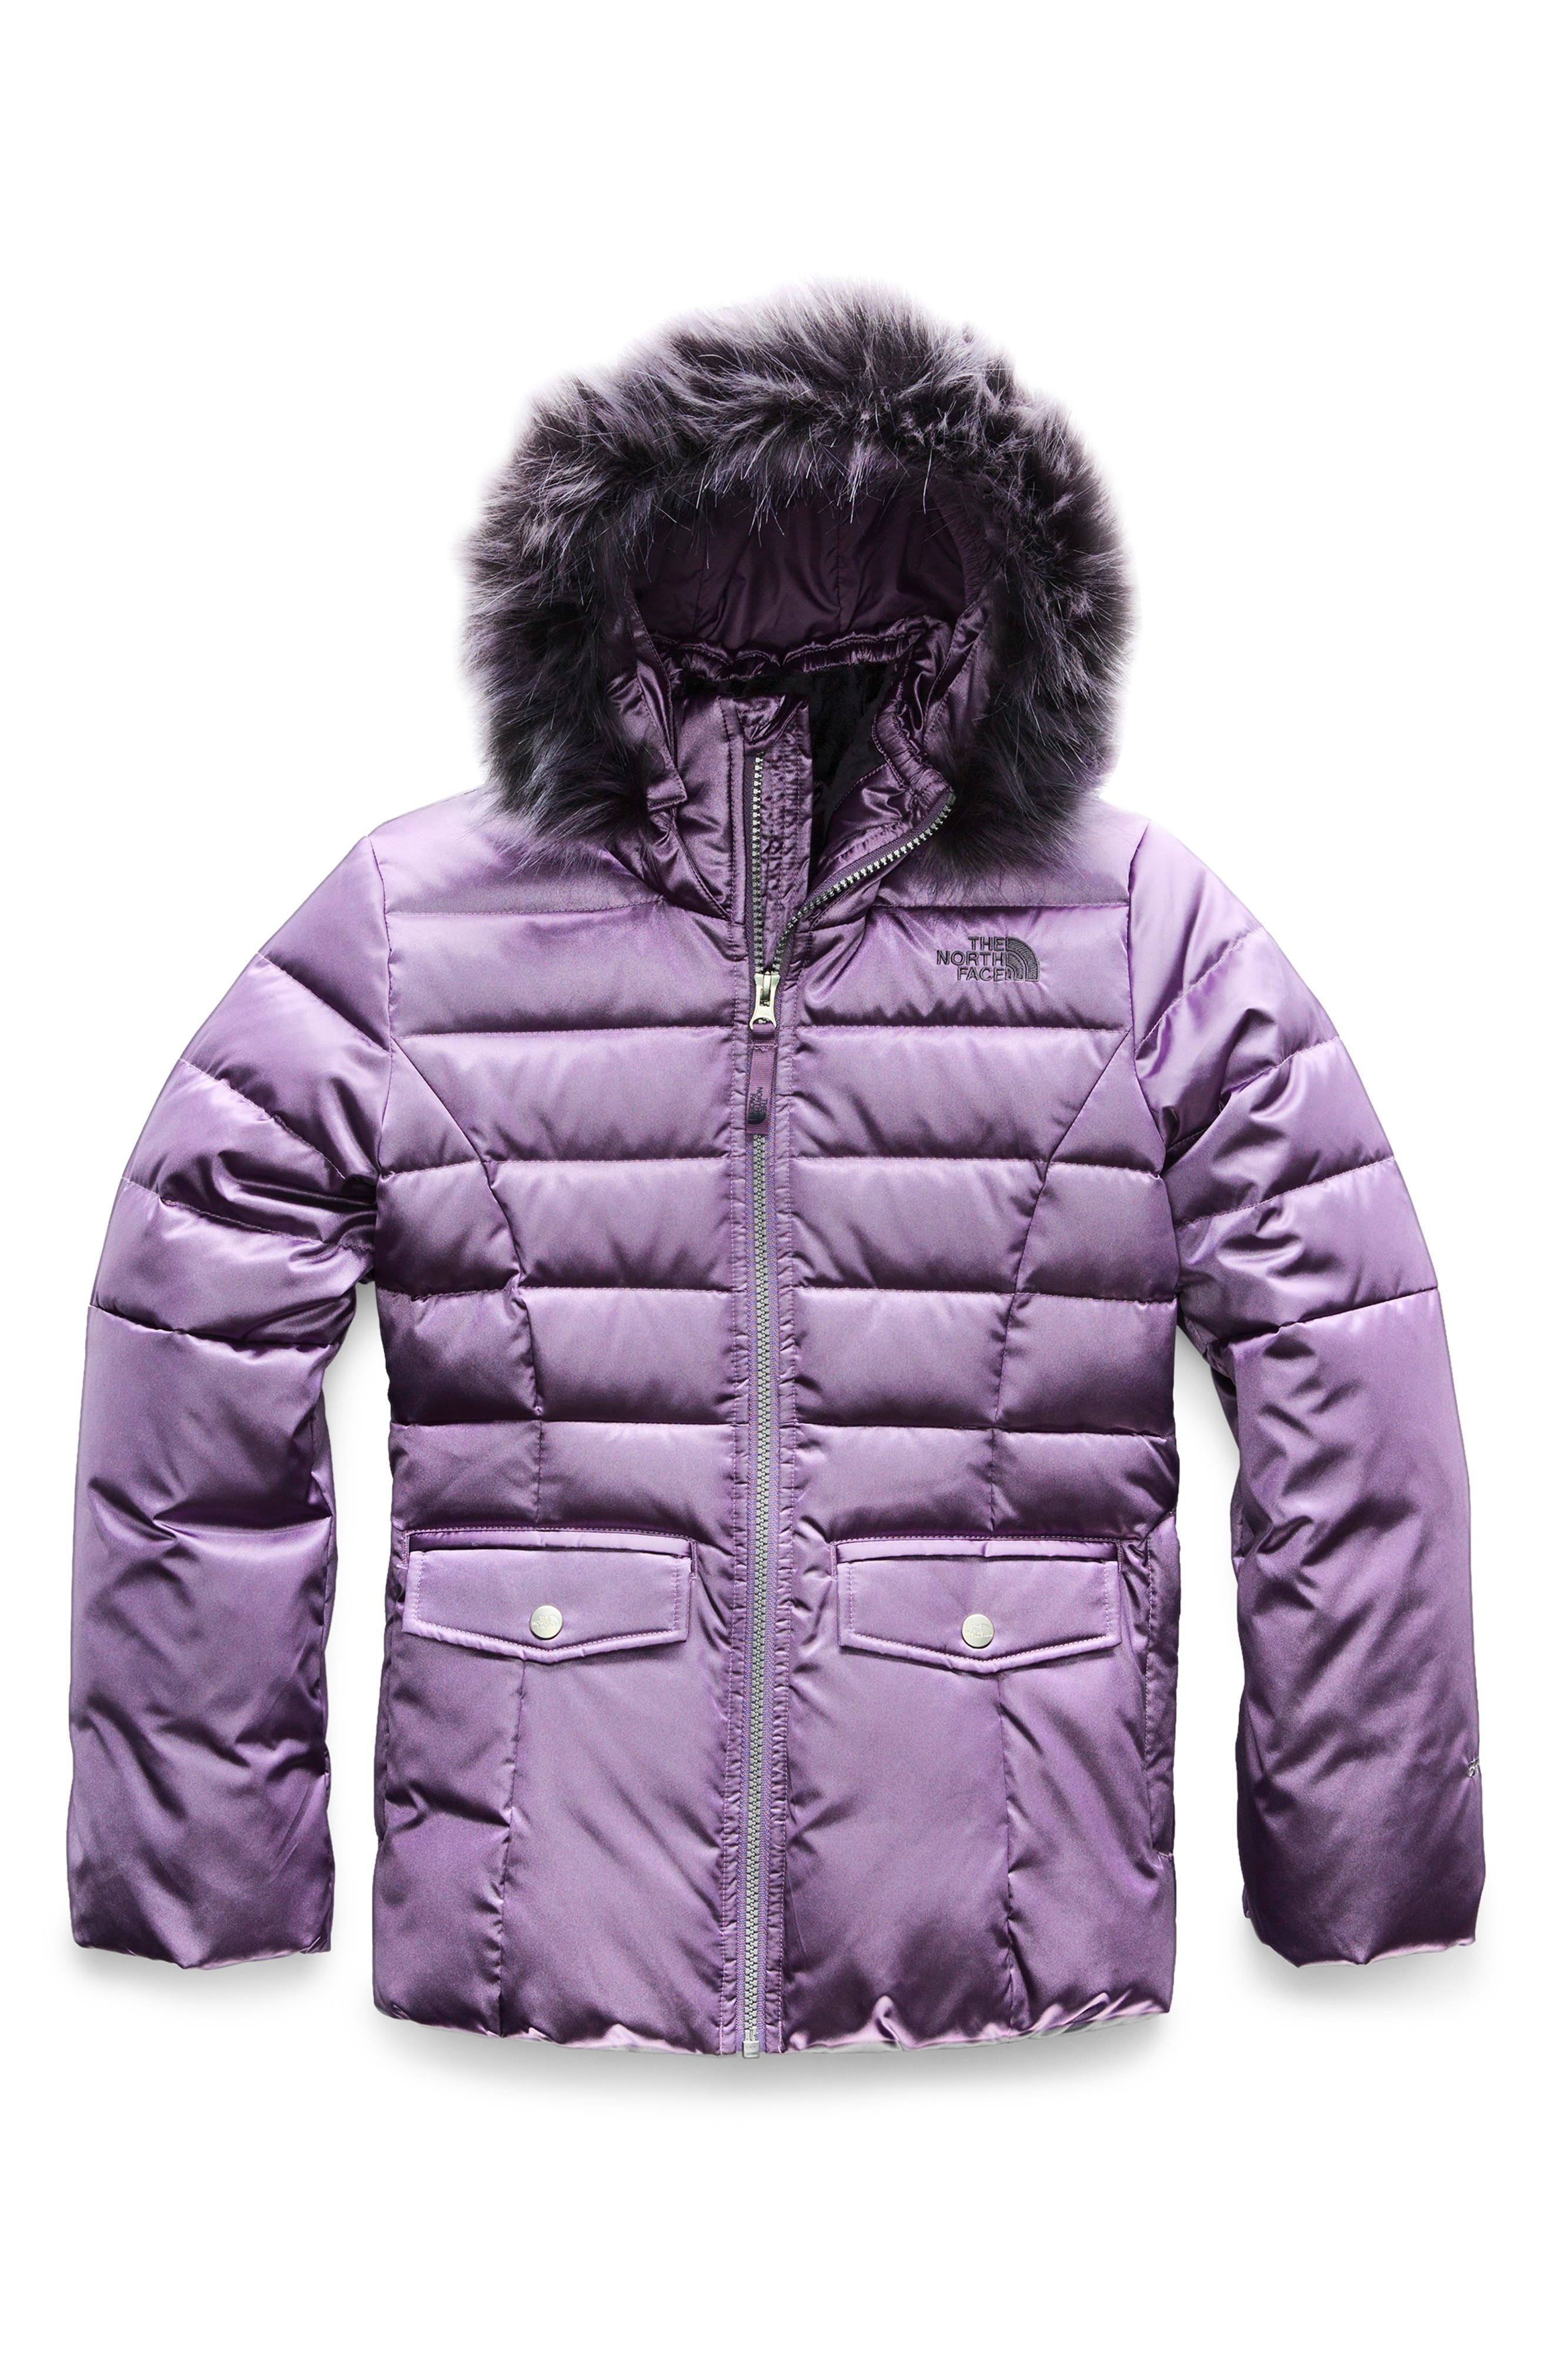 THE NORTH FACE, Gotham 2.0 Water Resistant 550-Fill-Power Down Jacket with Faux Fur Trim, Main thumbnail 1, color, PURPLE SAGE